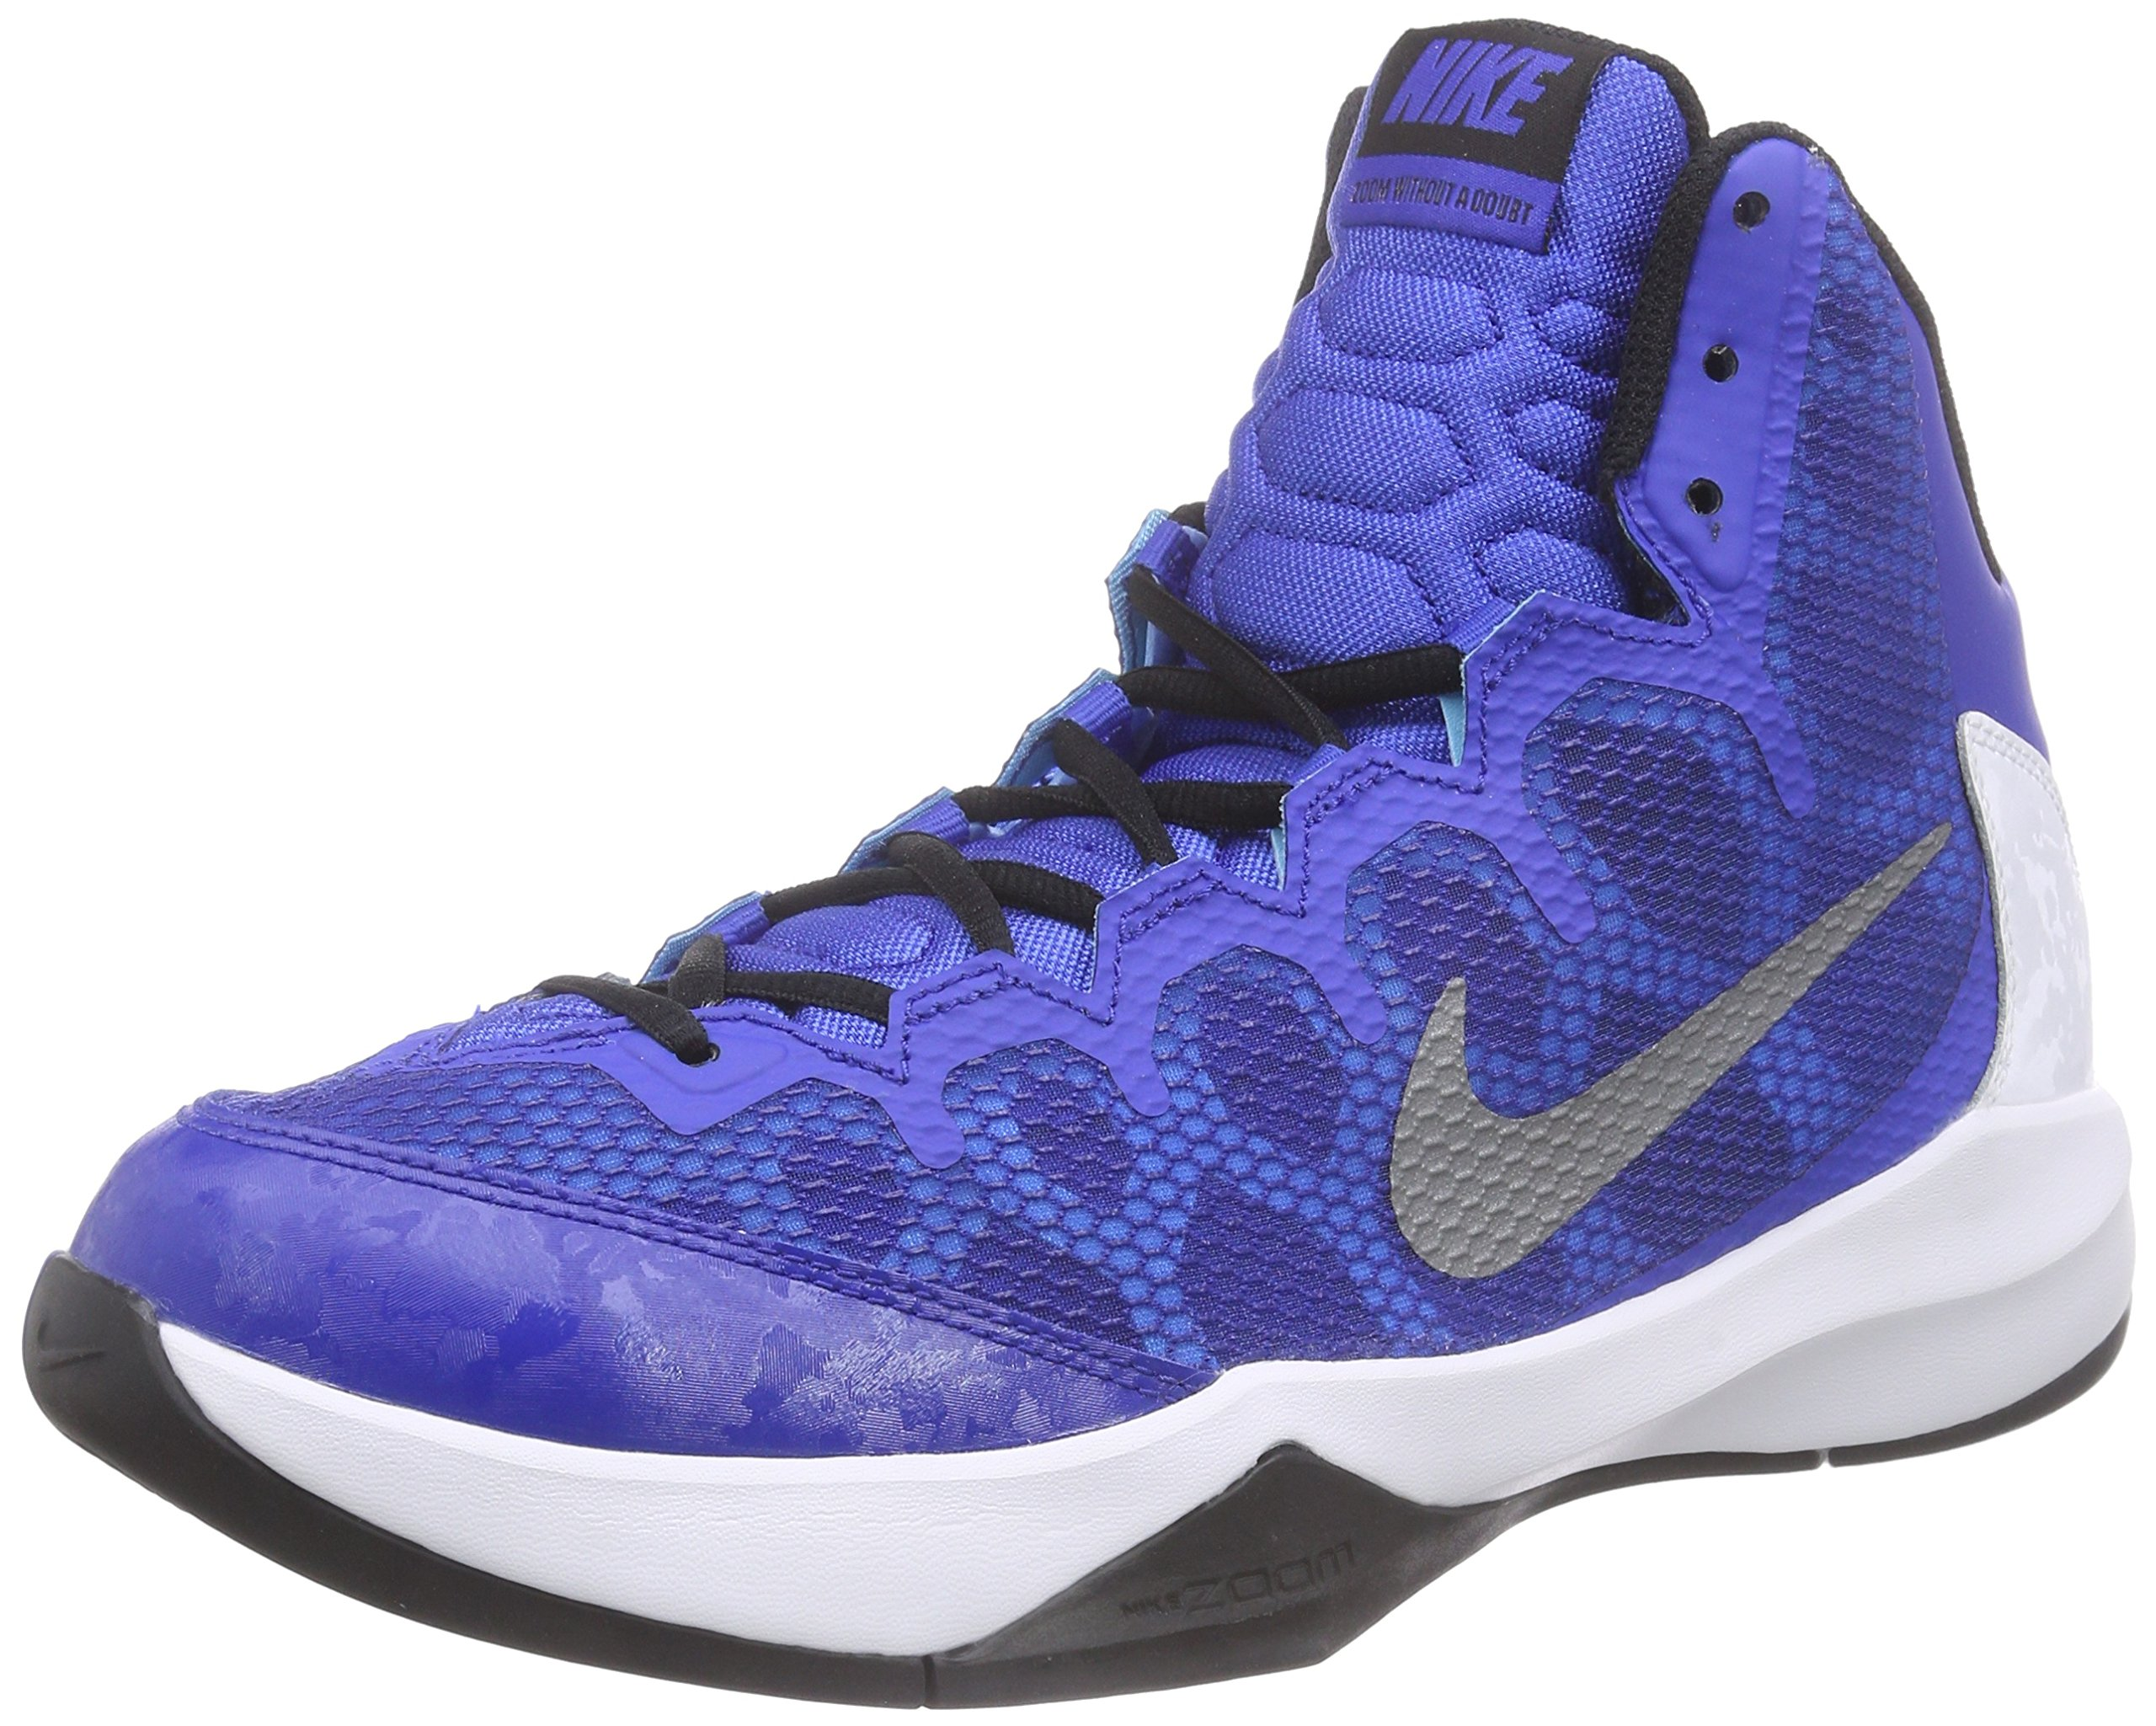 b42c6ba81603d Galleon - New Nike Men s Zoom Without A Doubt Basketball Shoe Game Royal  Black 9